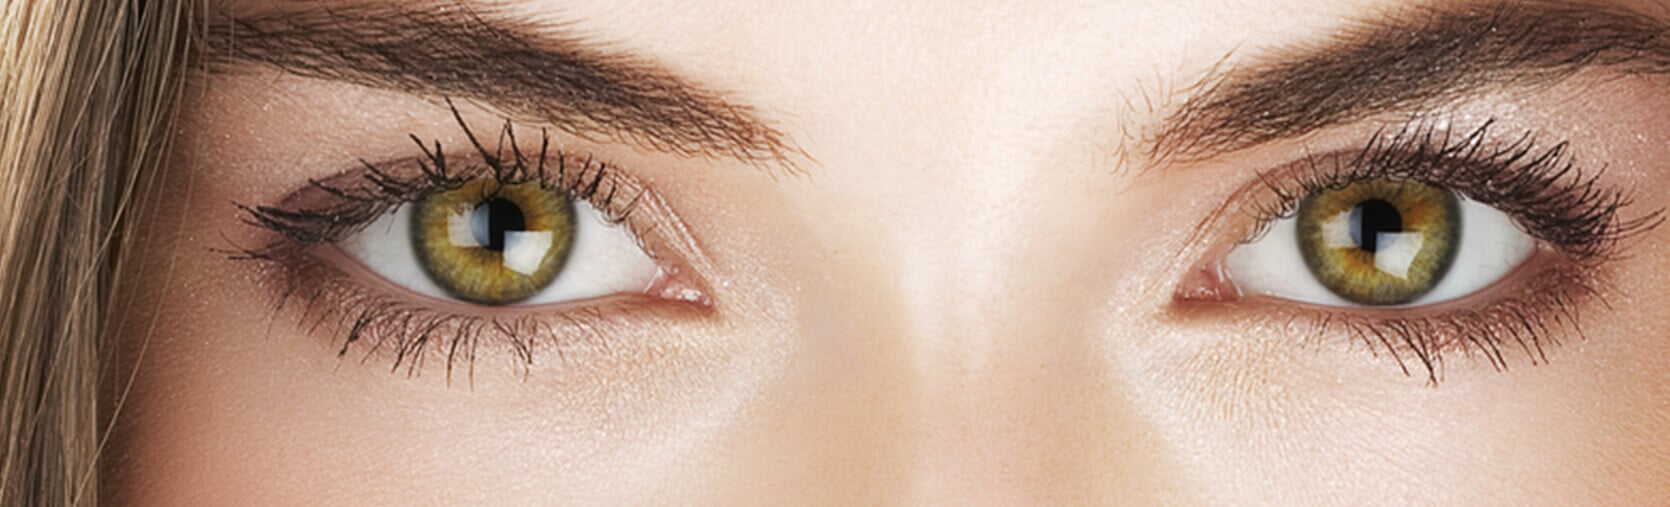 Opaque Coloured Contact Lenses | Vision Direct UK